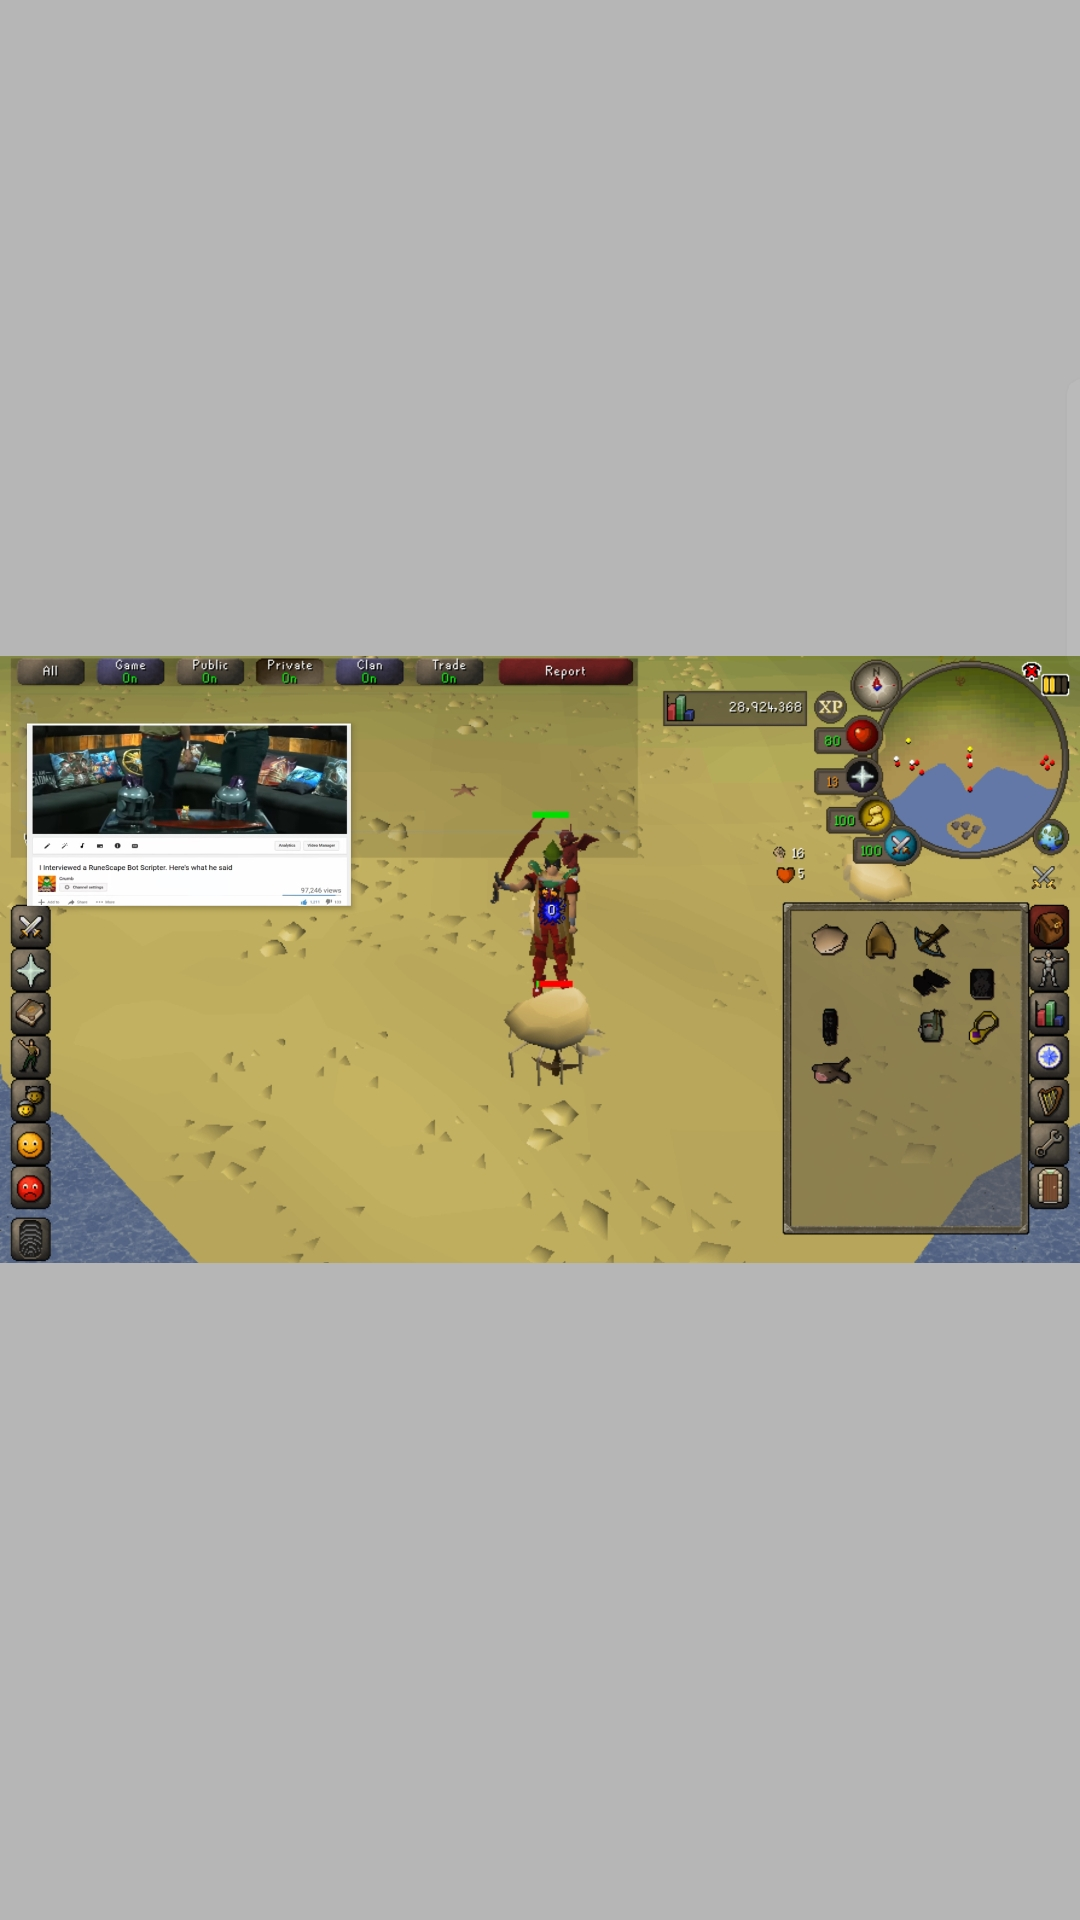 Inspiring Osrs Plank Make Guide Osrs Plank Make Xphr Osrs Samsung Galaxy You Can Make Youtube A Watch While You Osrs Samsung Galaxy You Can Make Youtube A Window dpreview Osrs Plank Make